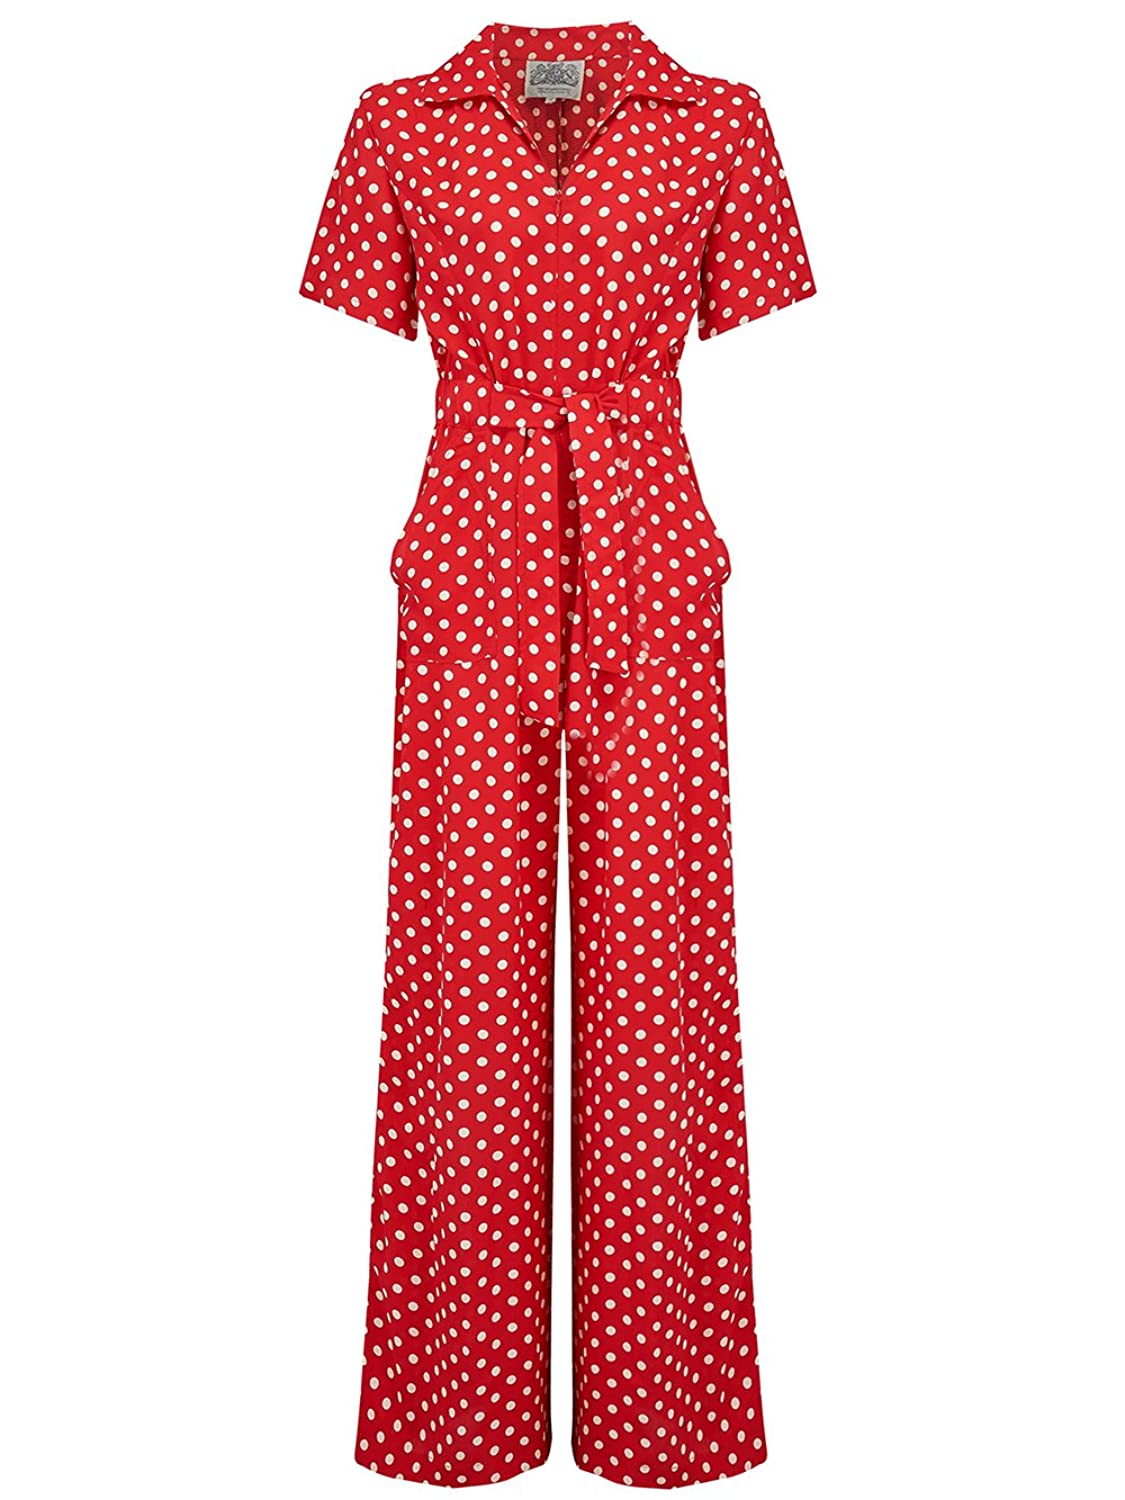 Vintage High Waisted Trousers, Sailor Pants, Jeans 1940s Vintage Inspired Lauren jumpsuit in Red Spot by The Seamstress of Bloomsbury £89.00 AT vintagedancer.com